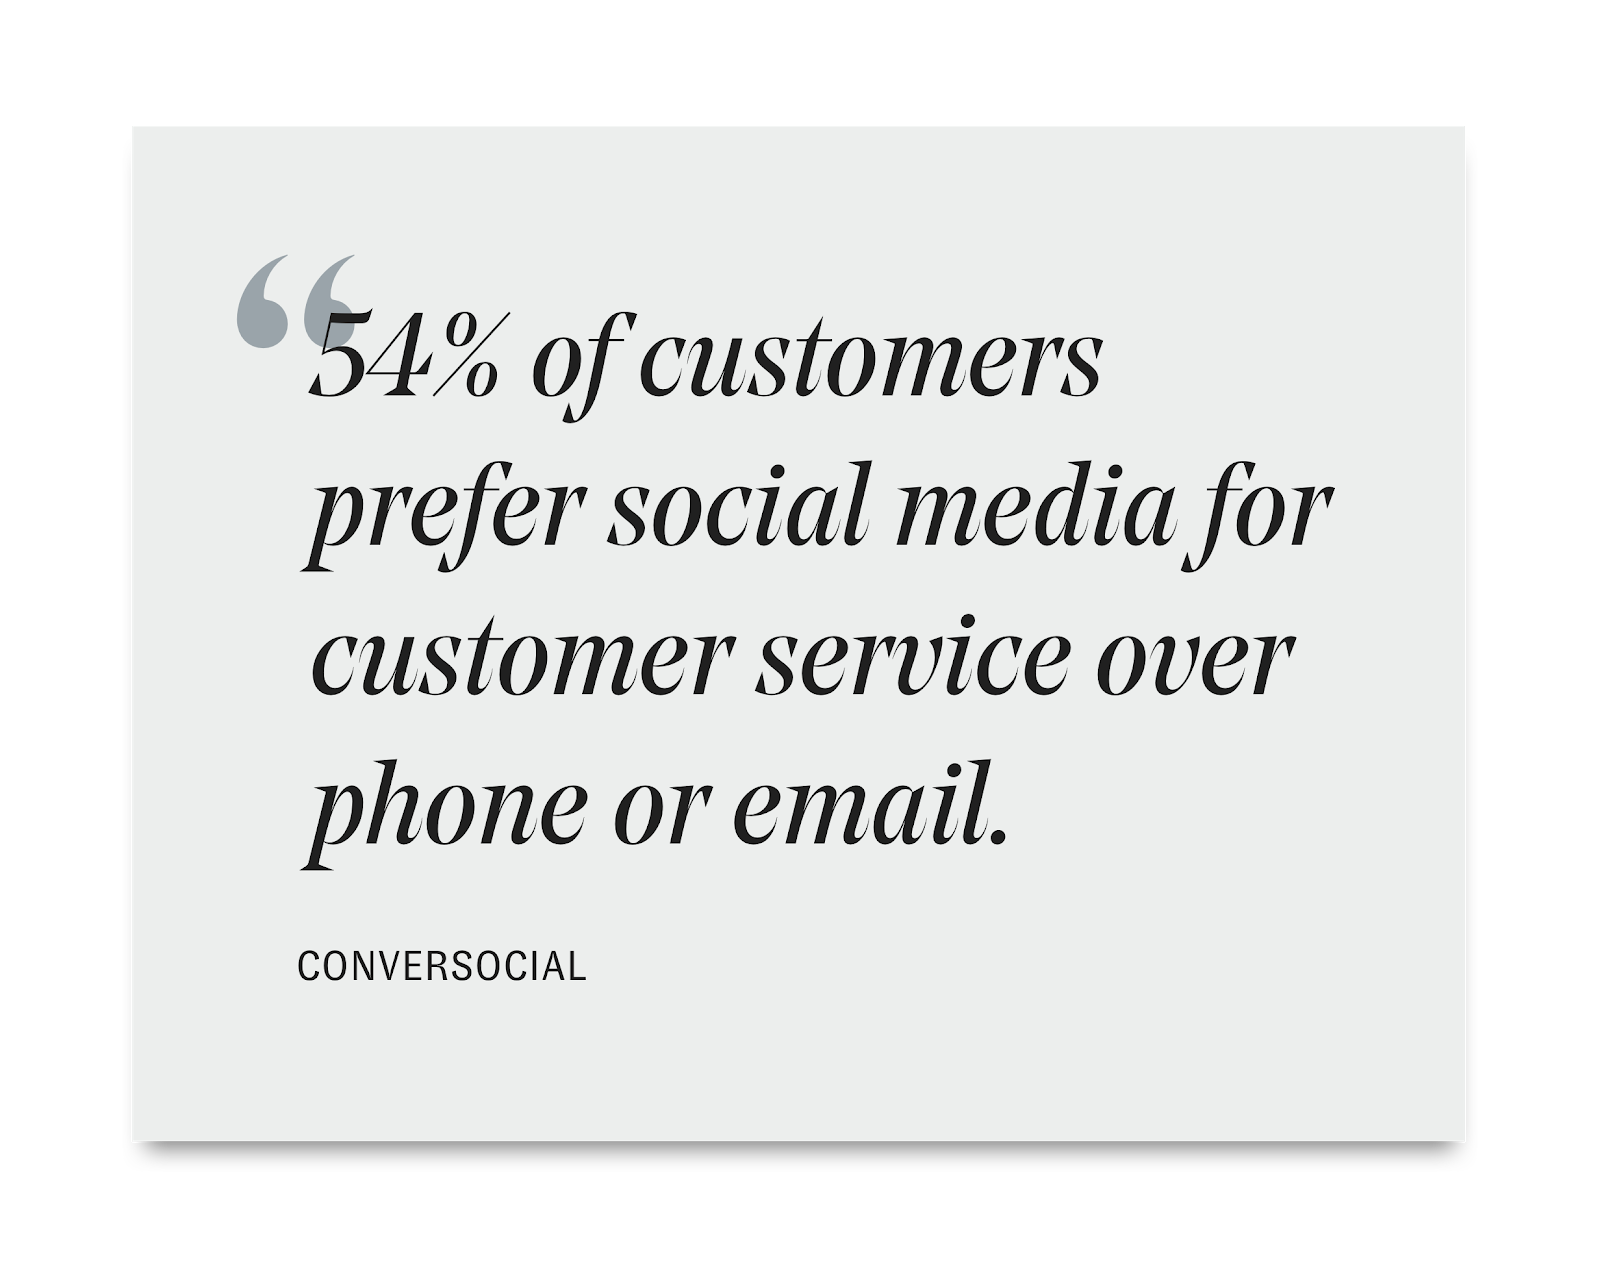 This quote reads: 54% of customers prefer social media for customer service over phone or email. The quote is in a light green box.